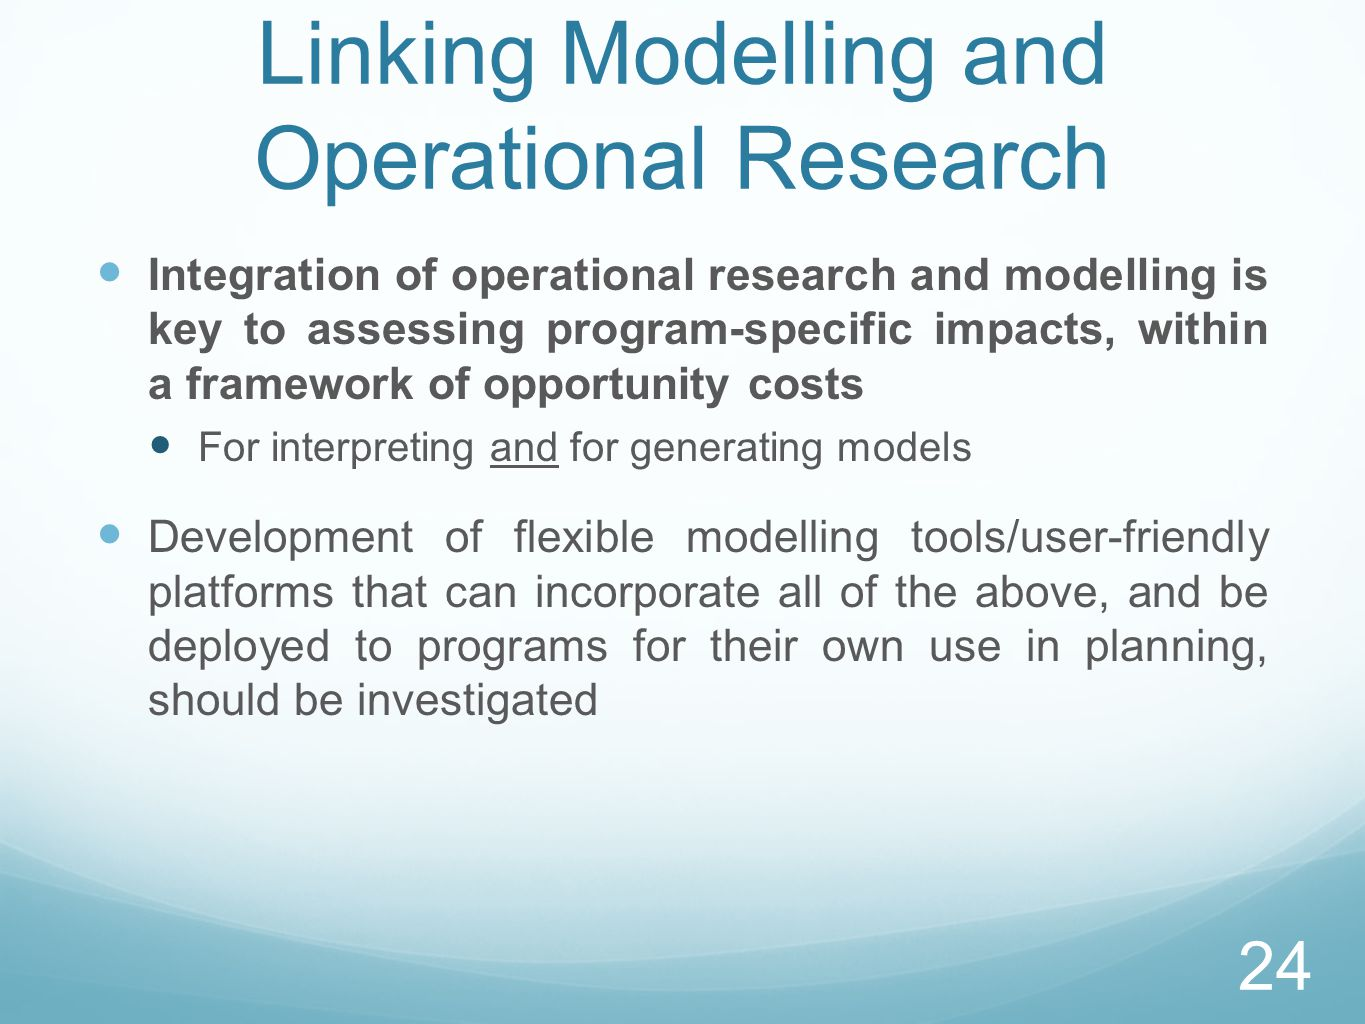 Linking Modelling and Operational Research